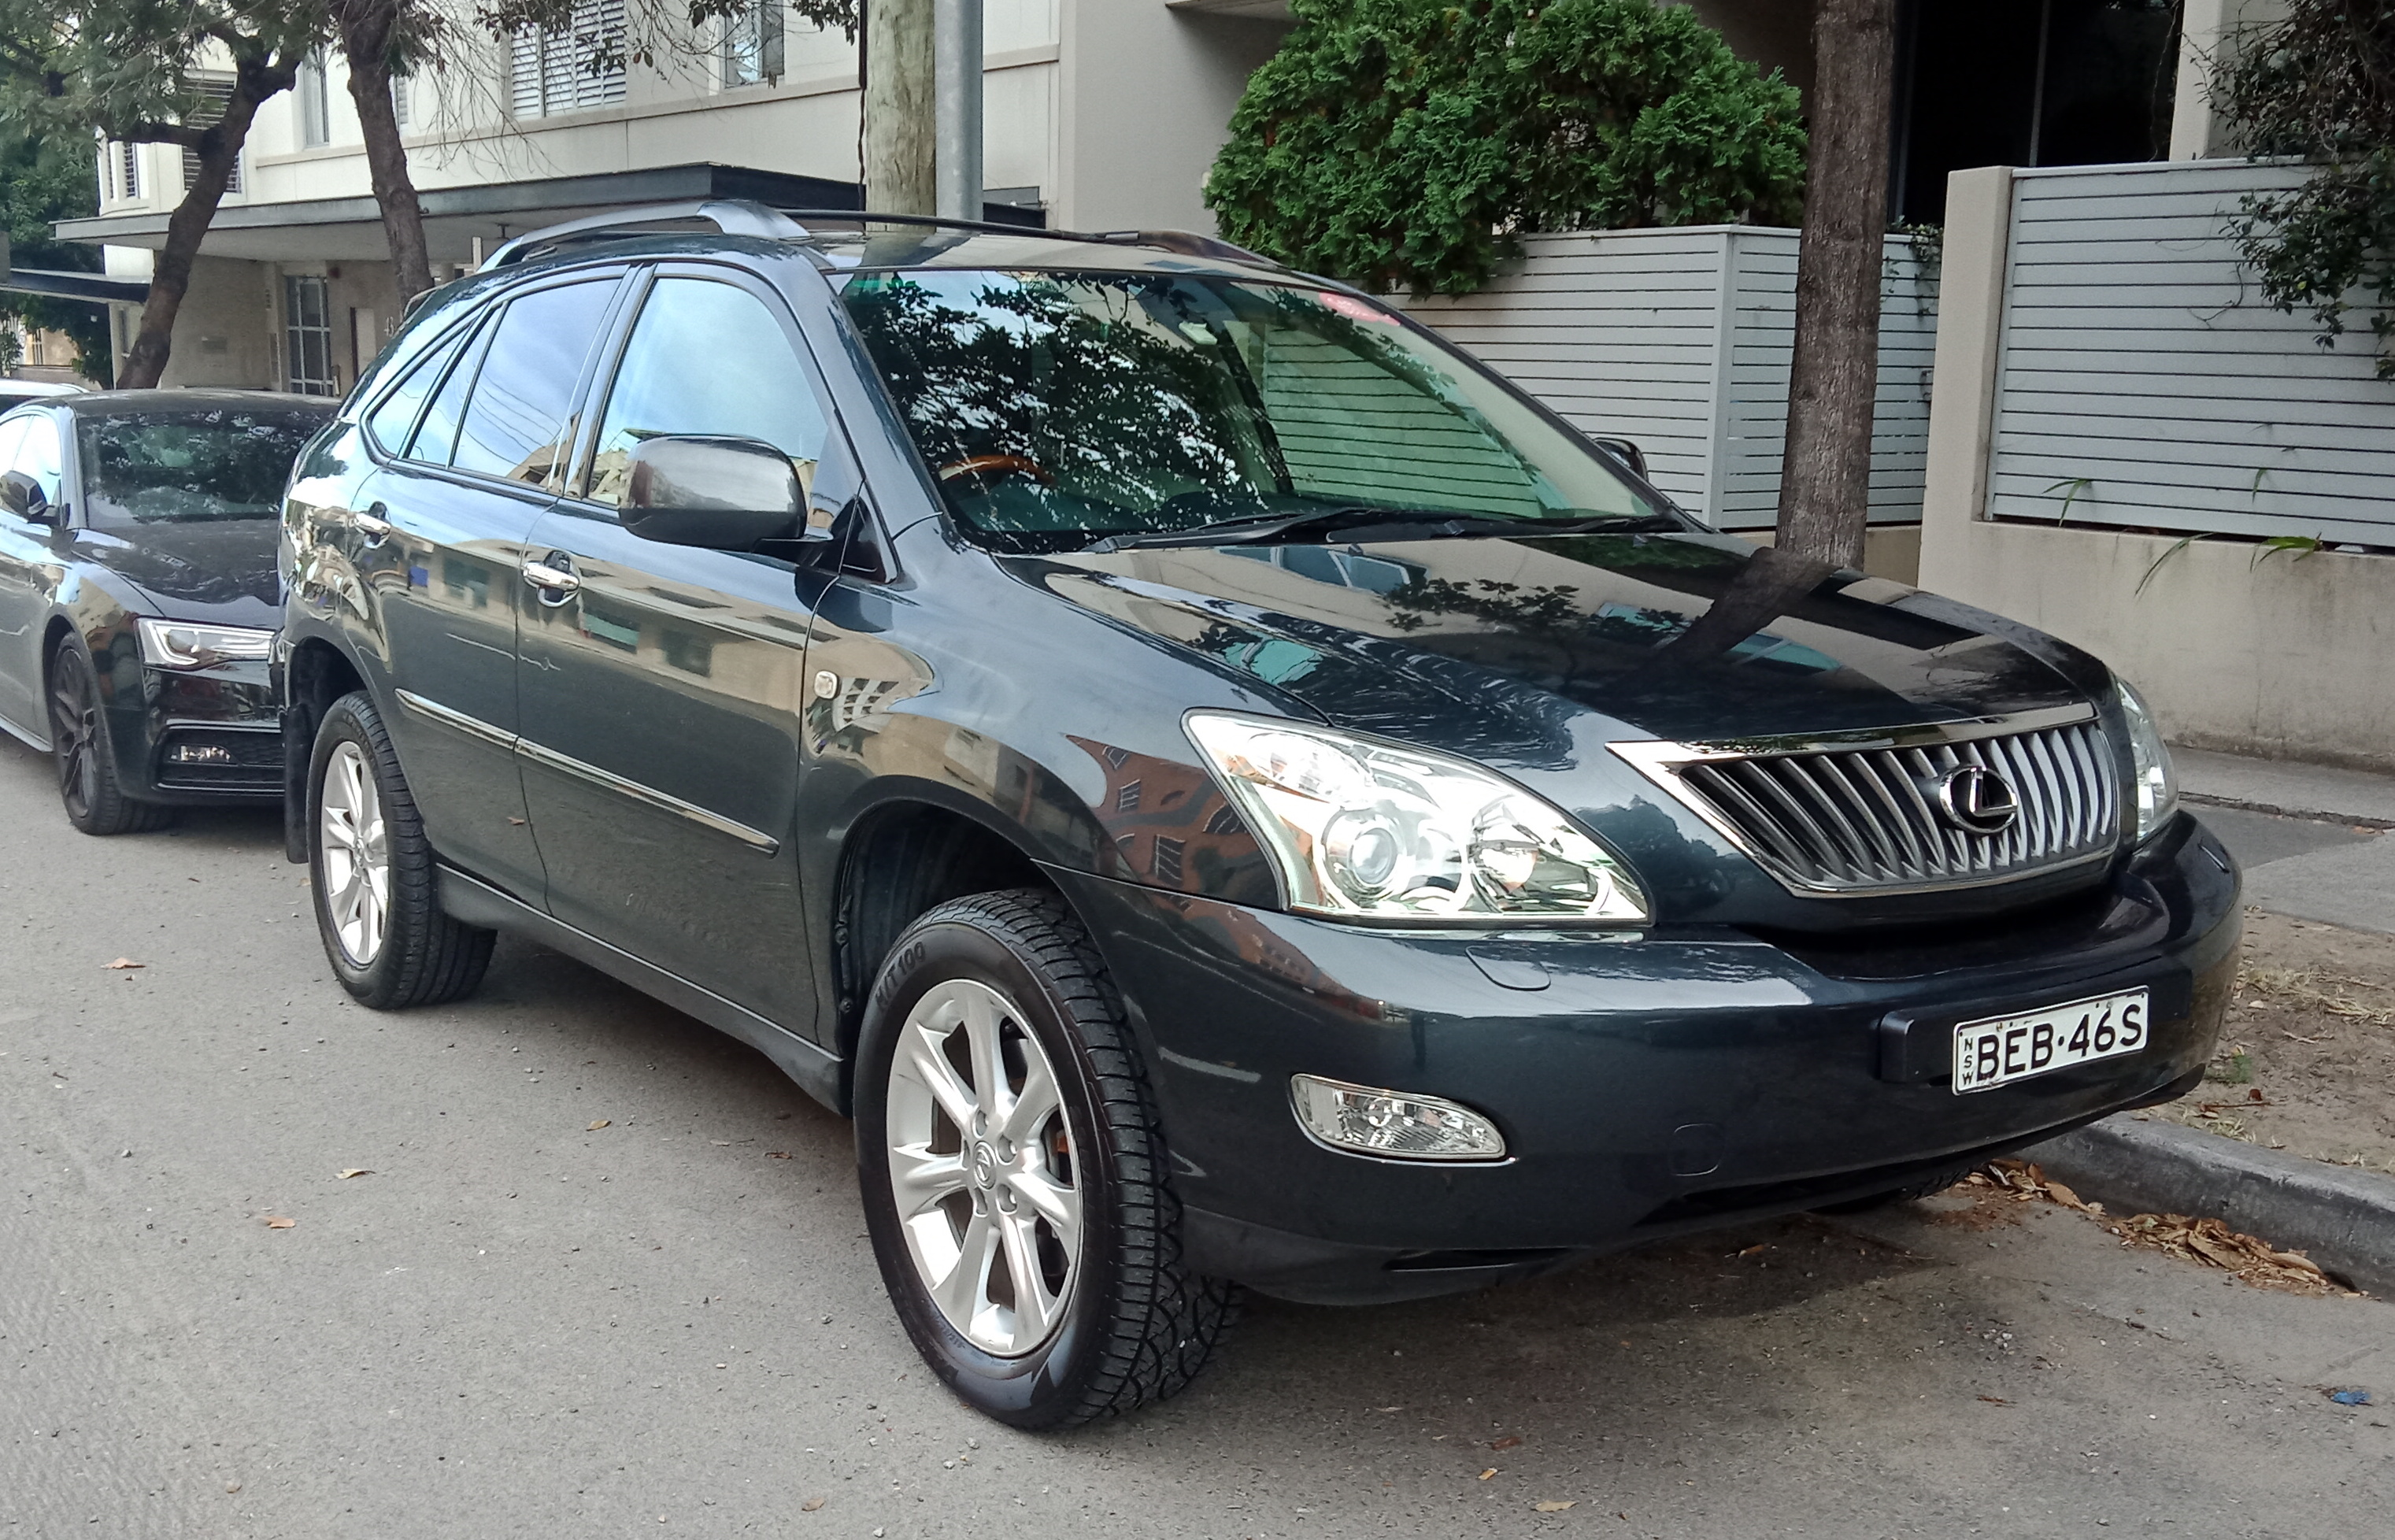 Picture of Melissa's 2007 Lexus RX350